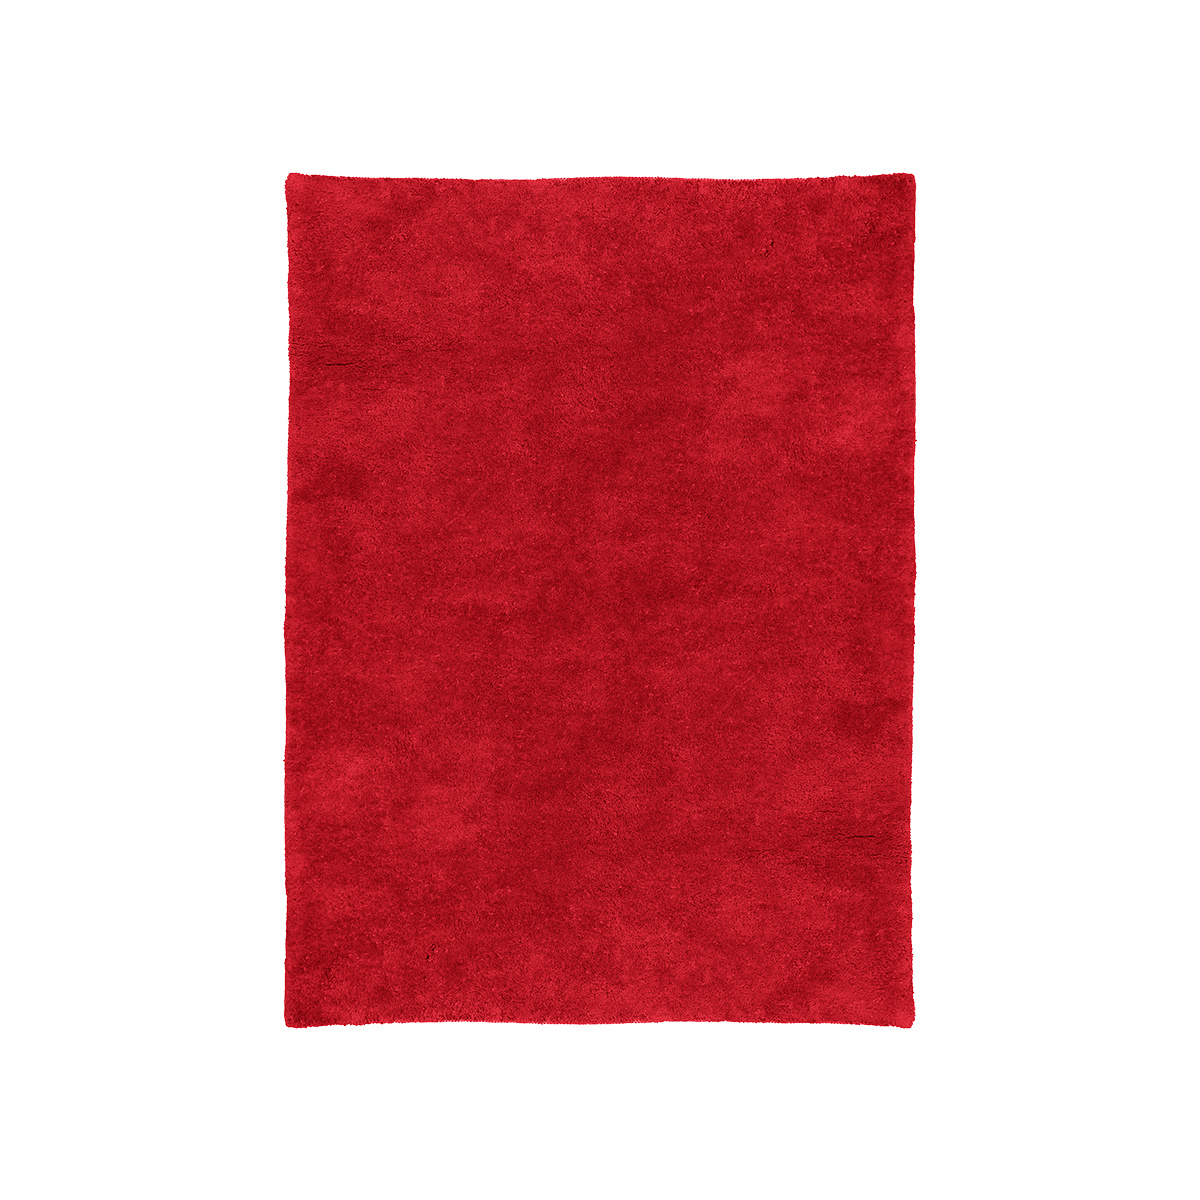 Velluto Rug, Red 150 x 200